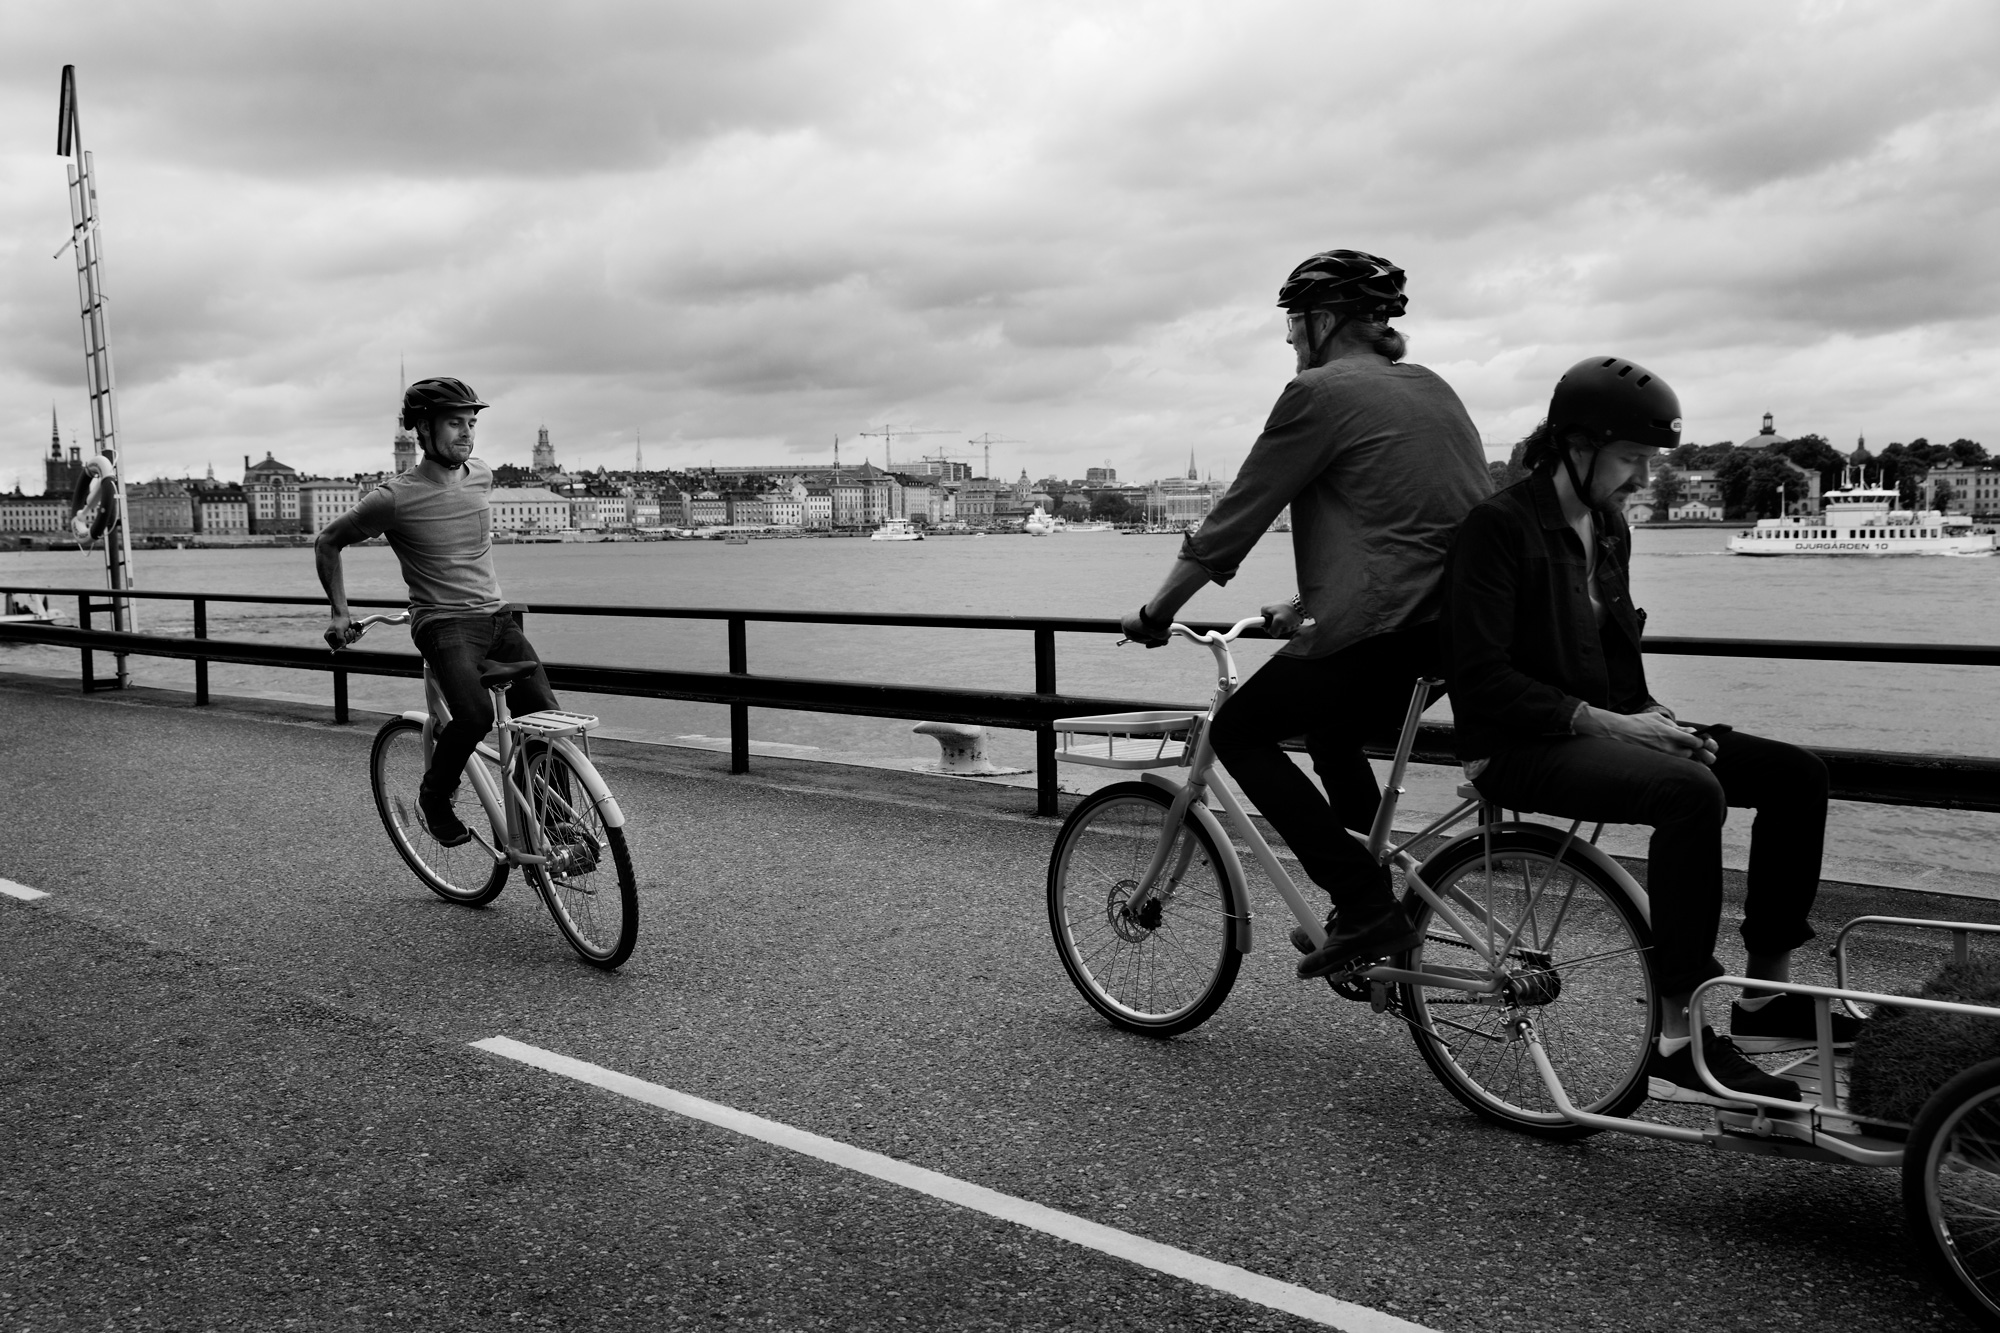 On a waterfront road a man is riding a bicycle backwards, closely followed by two men on a bike with a trailer wagon.